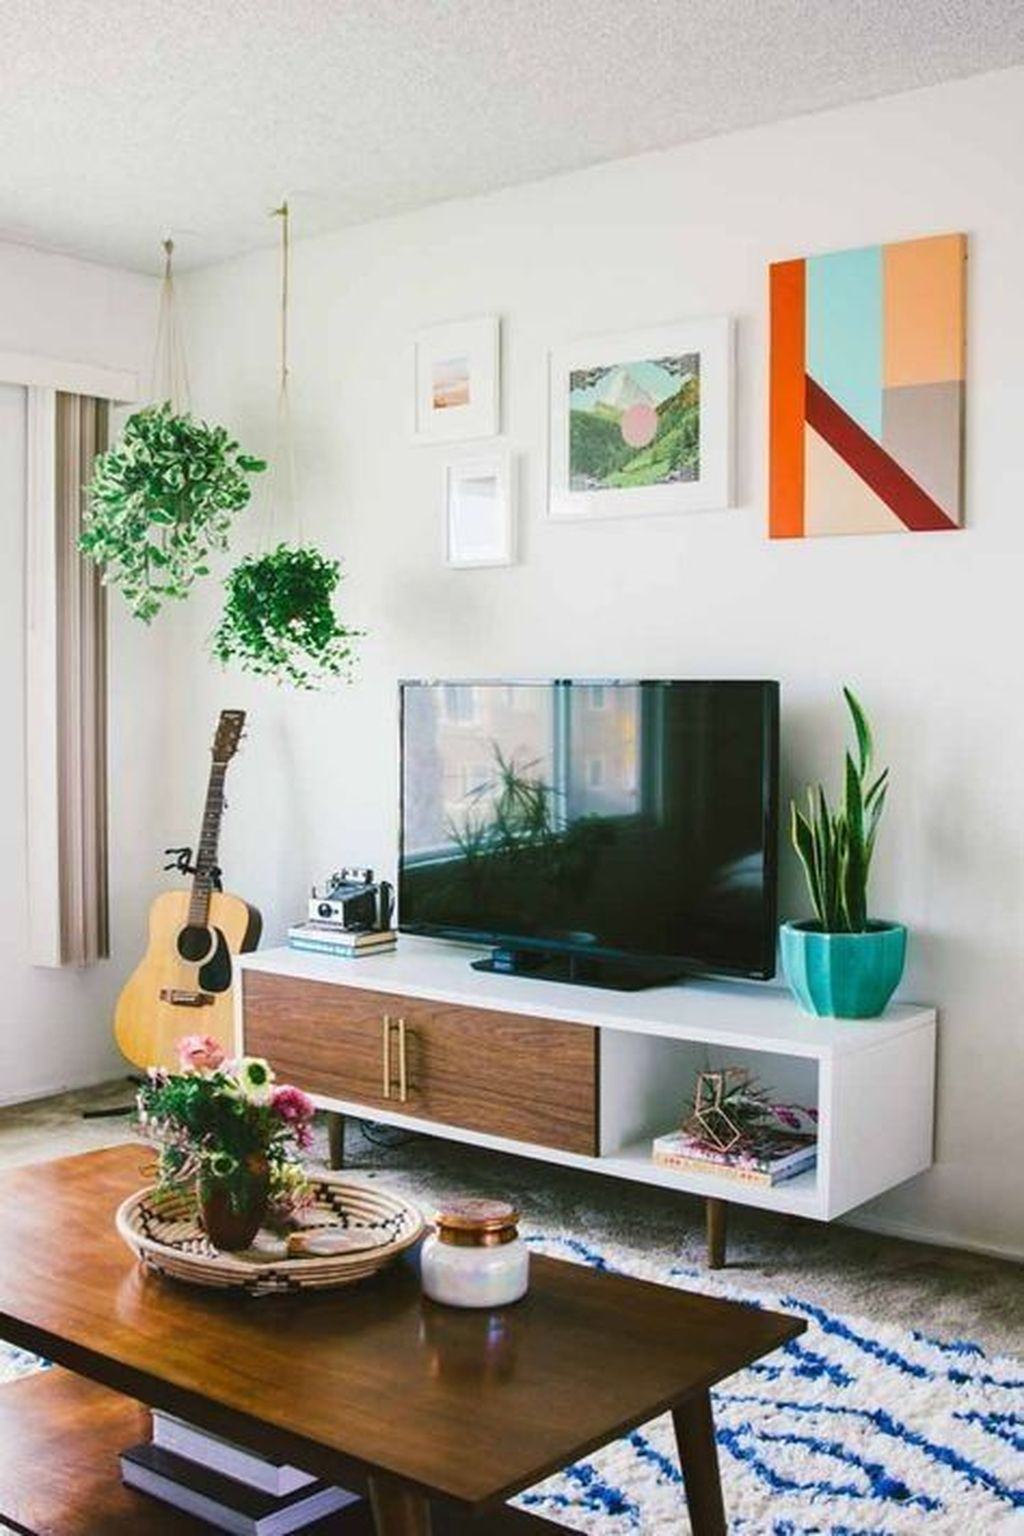 30+ Simple Diy Apartment Decorating Ideas On A Budget ... on Awesome Apartment Budget Apartment Living Room Ideas  id=19127